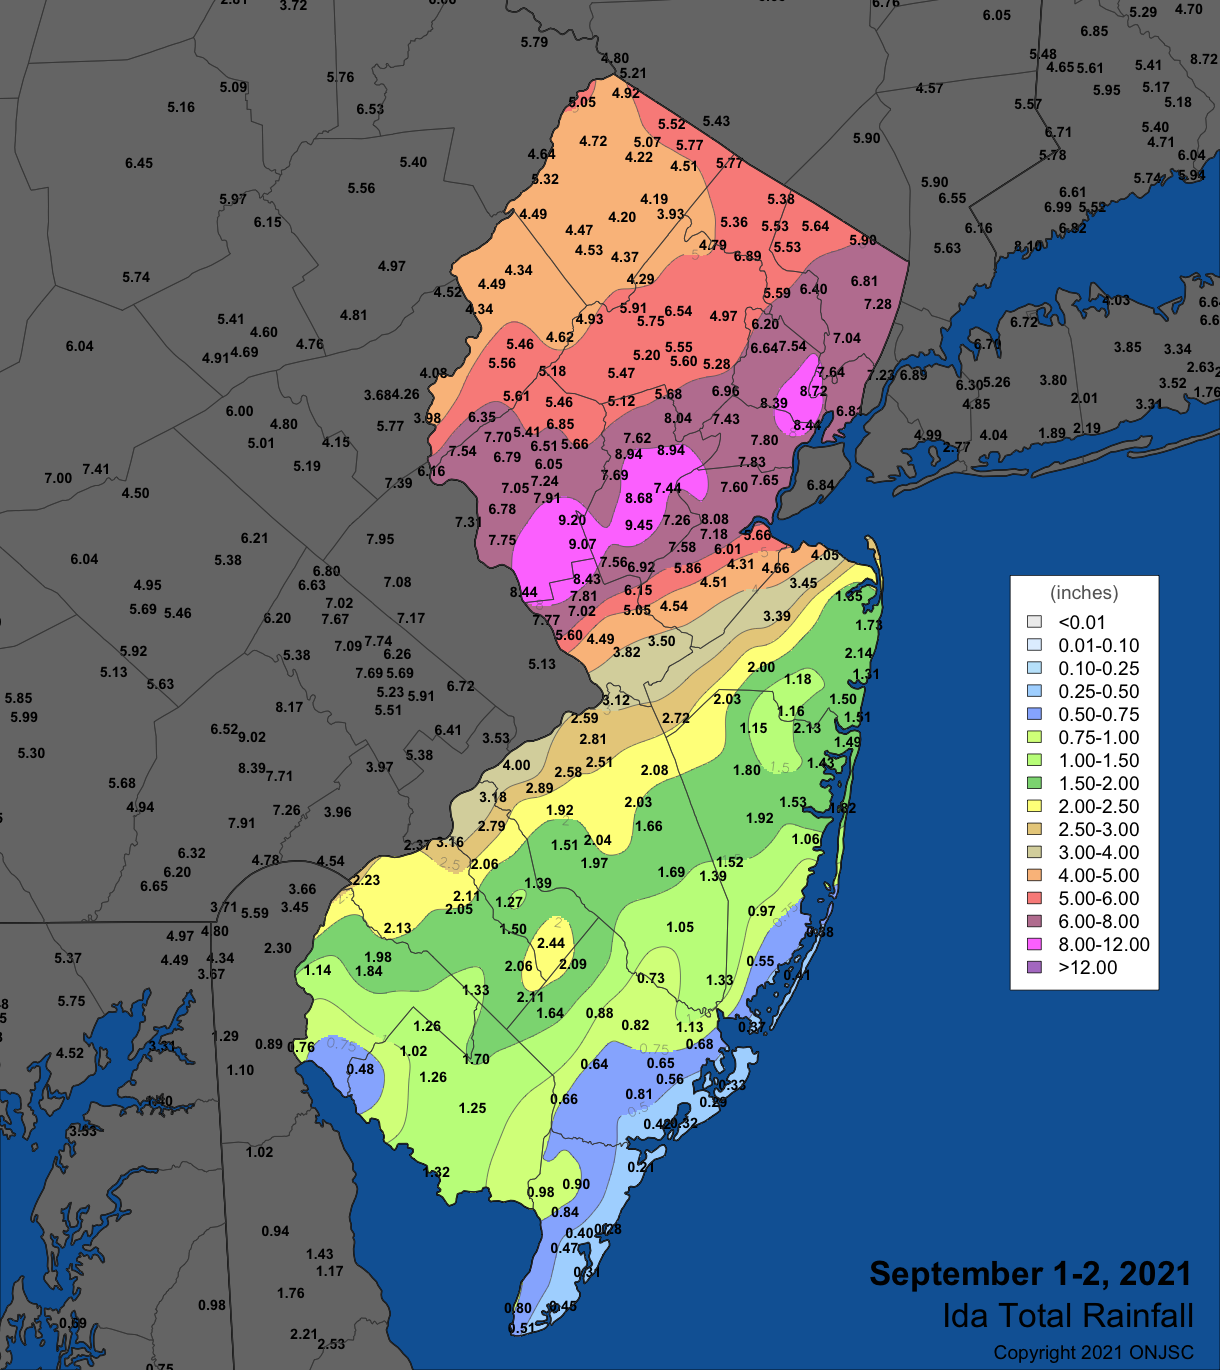 September 1st–2nd rainfall in NJ and surrounding states based on observations from Rutgers NJ Weather Network, NJ CoCoRaHS, National Weather Service Cooperative stations, and observations from several other networks. Around 370 NJ observations were used to generate the map. Not all observations that went into the colored contouring in NJ are shown to avoid overlapping values.